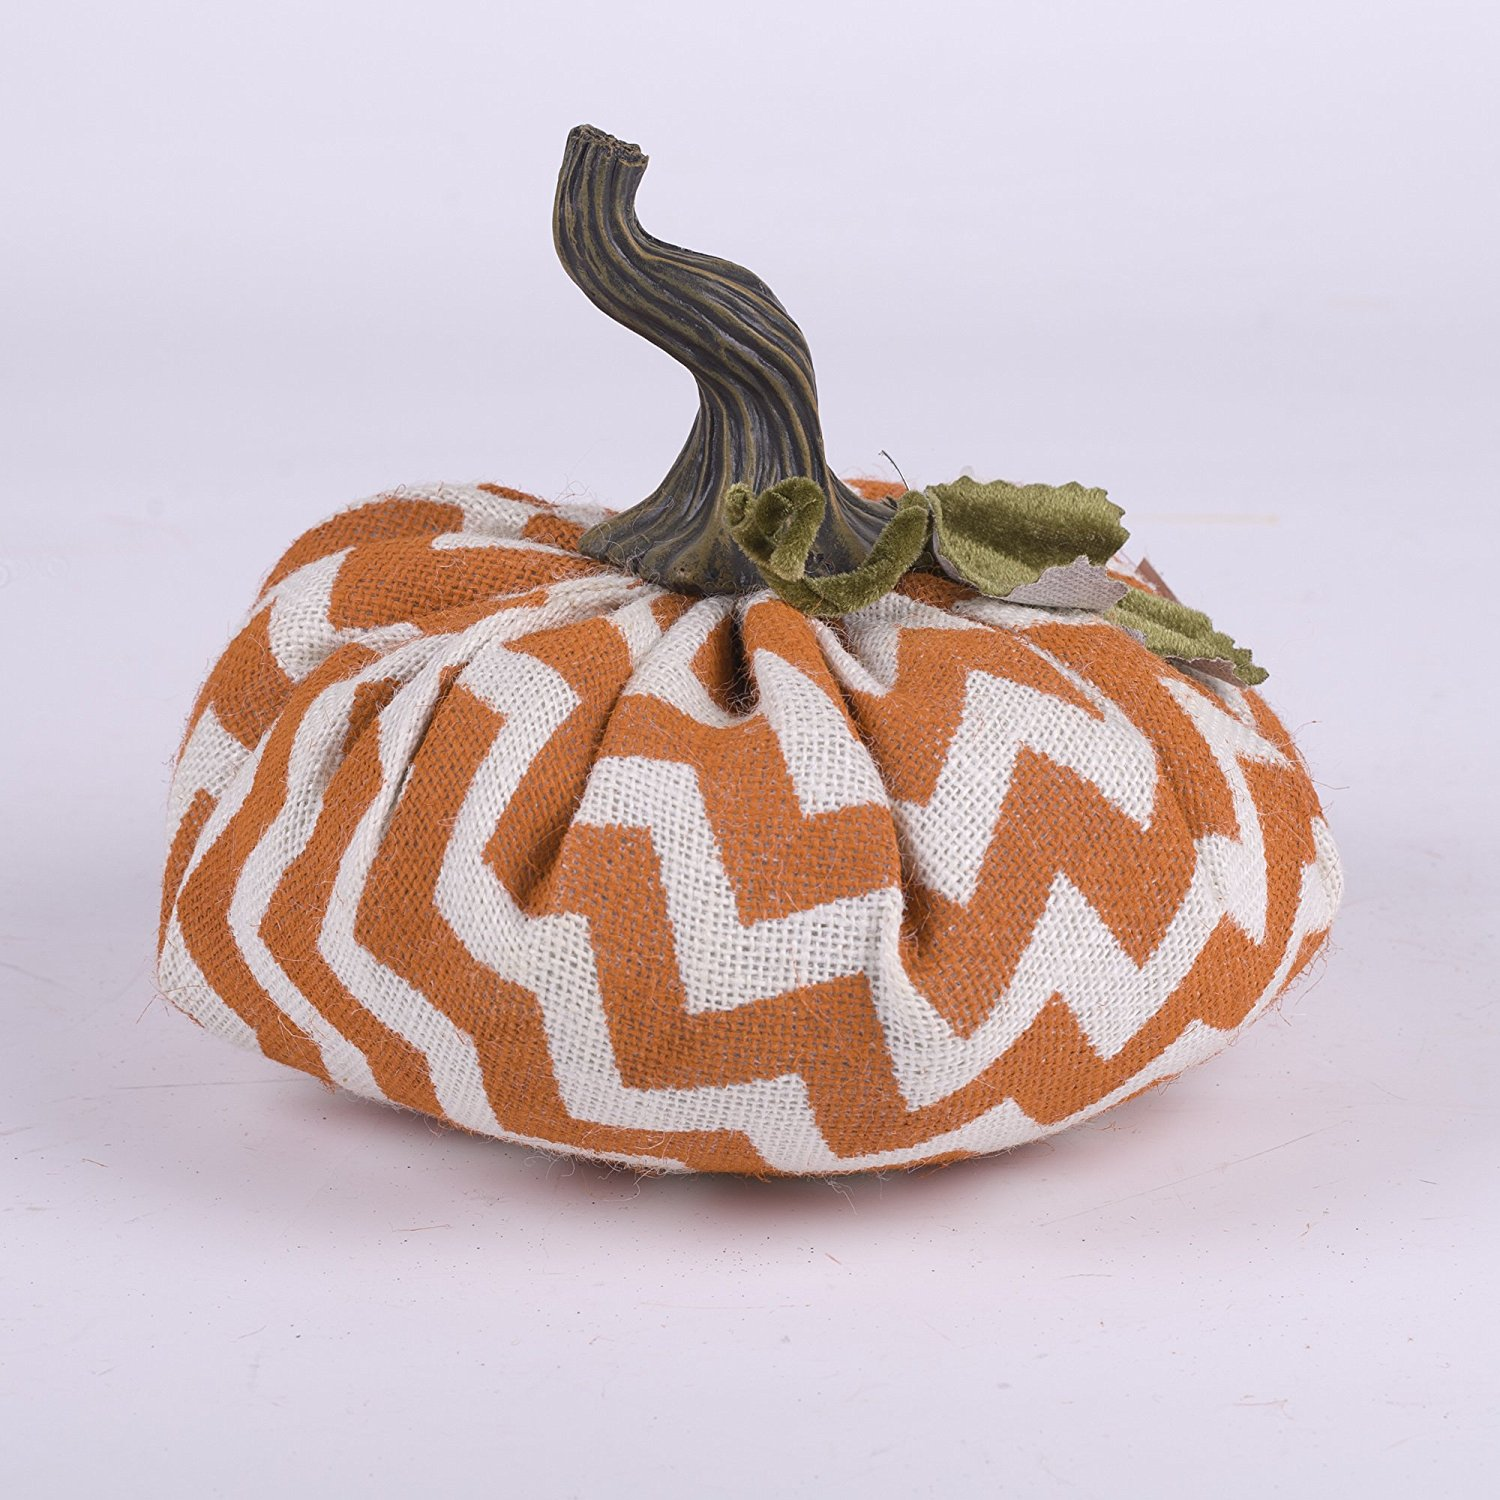 Glitzhome Medium Chevron Plush Burlap Pumpkin Decor